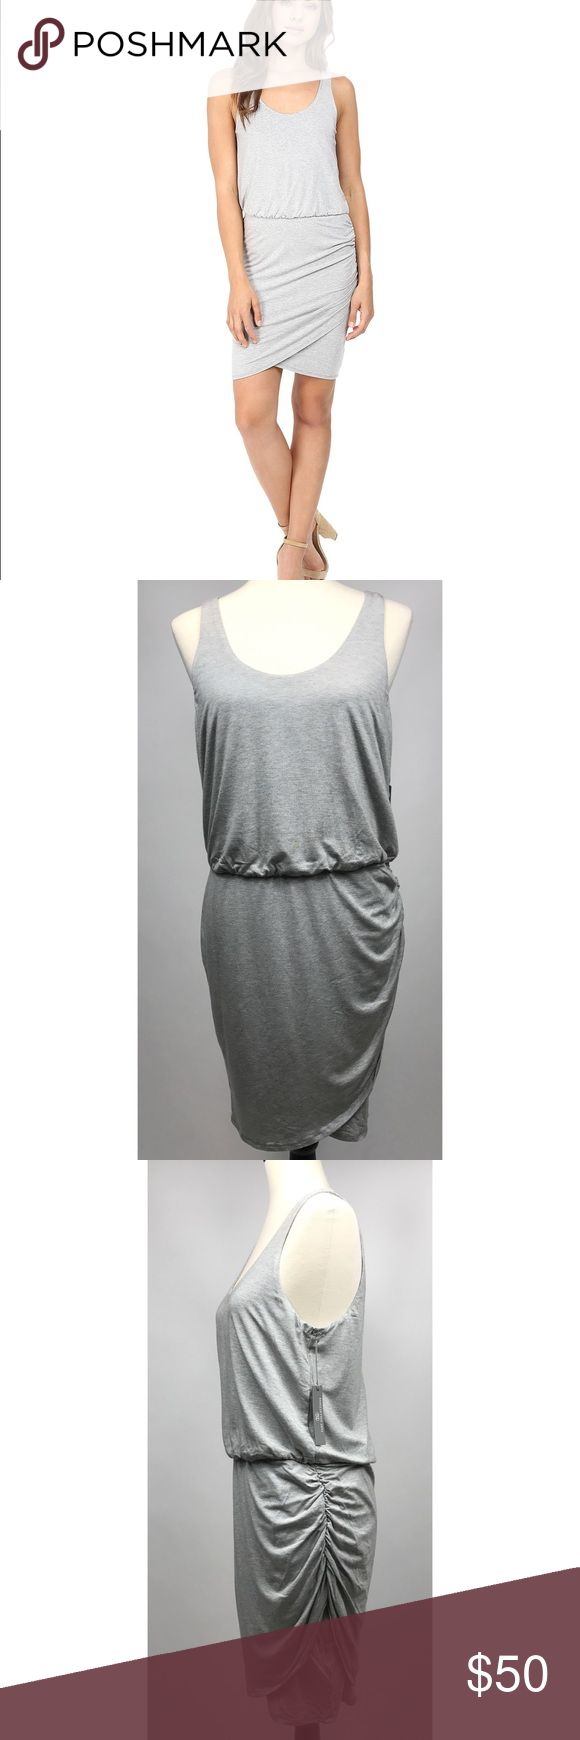 "Tart Collections Jan Dress New with Tags - Tart Collections Jan Dress   Tulip skirt with ruching on the side   Sleeveless, scoop neckline  Light gray  Size Large  Bust 17""  Waist 15 1/2""  Length 36""  95% Modal / 5% Spandex Tart Dresses"